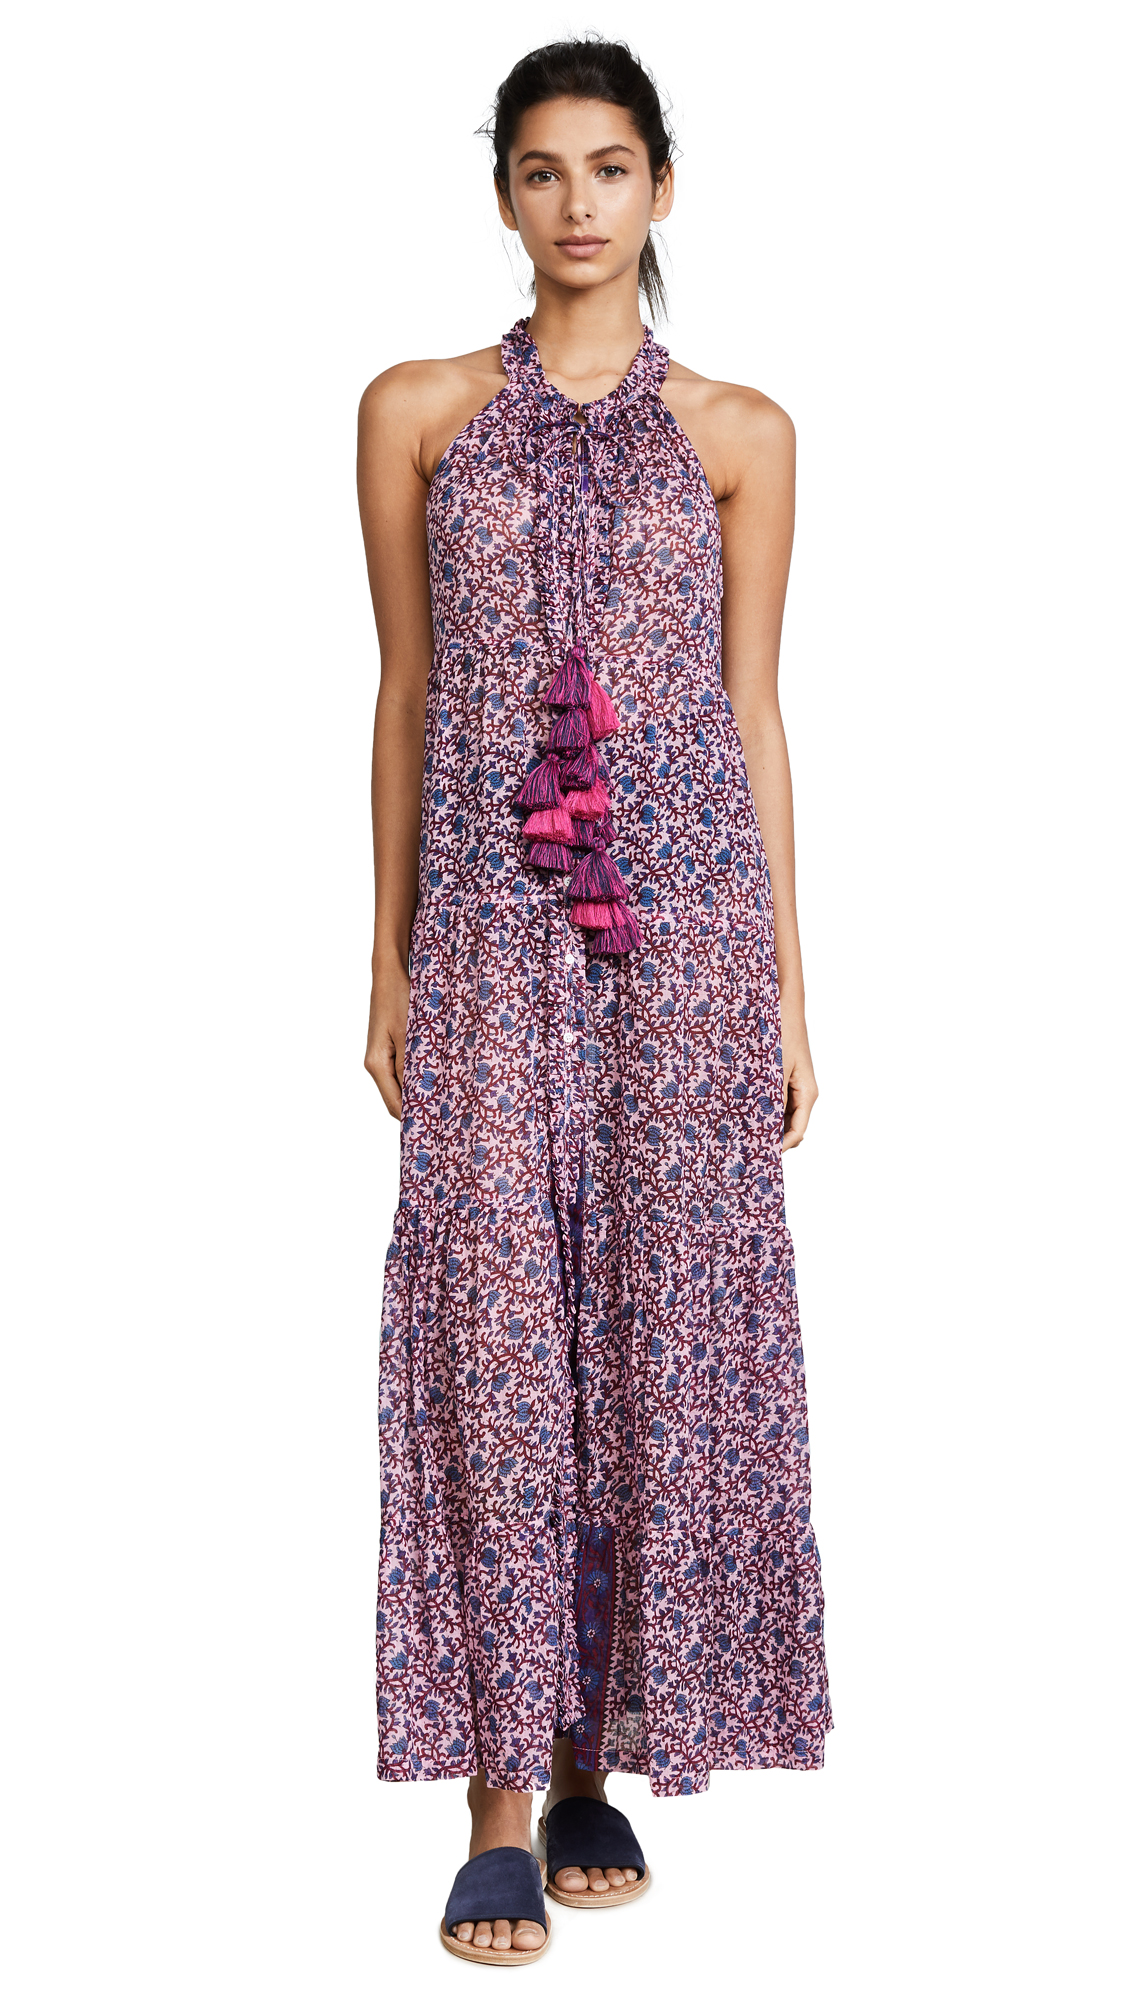 Poupette St Barth Honey Maxi Dress